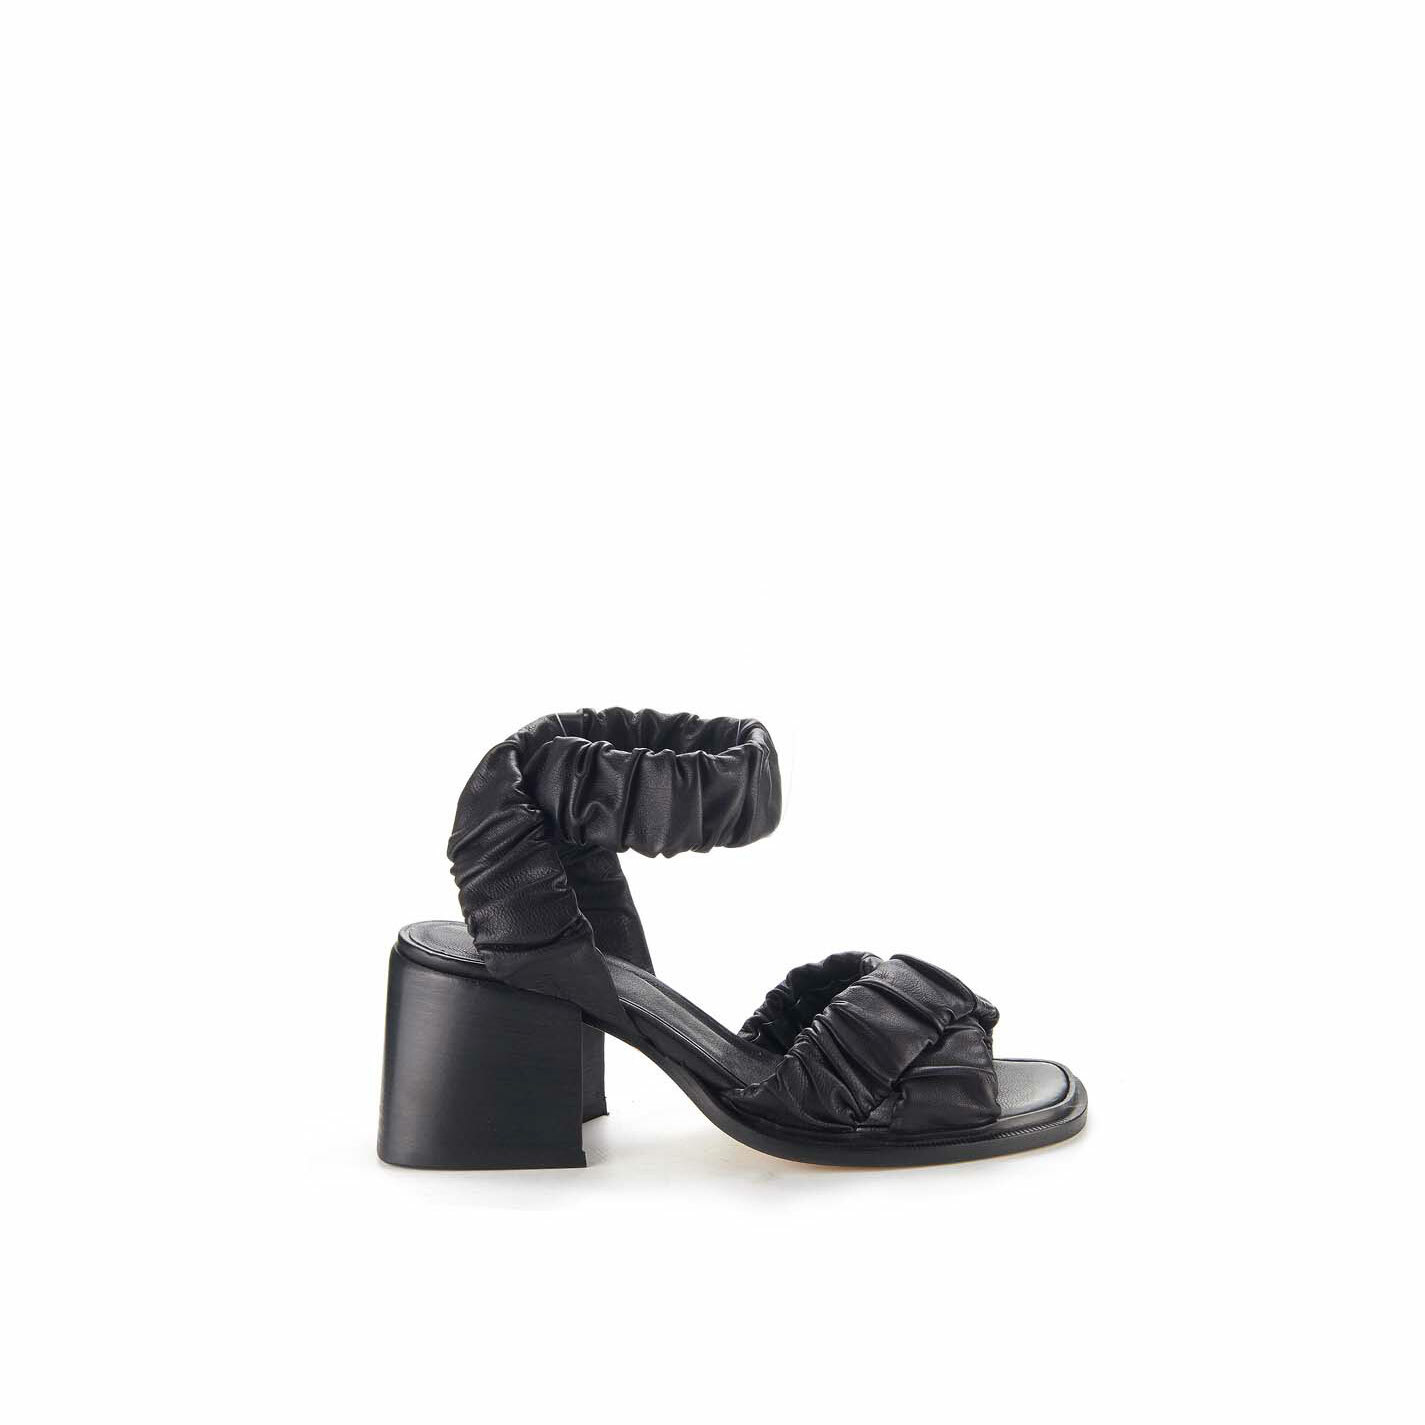 Black sandals with criss-crossing bands